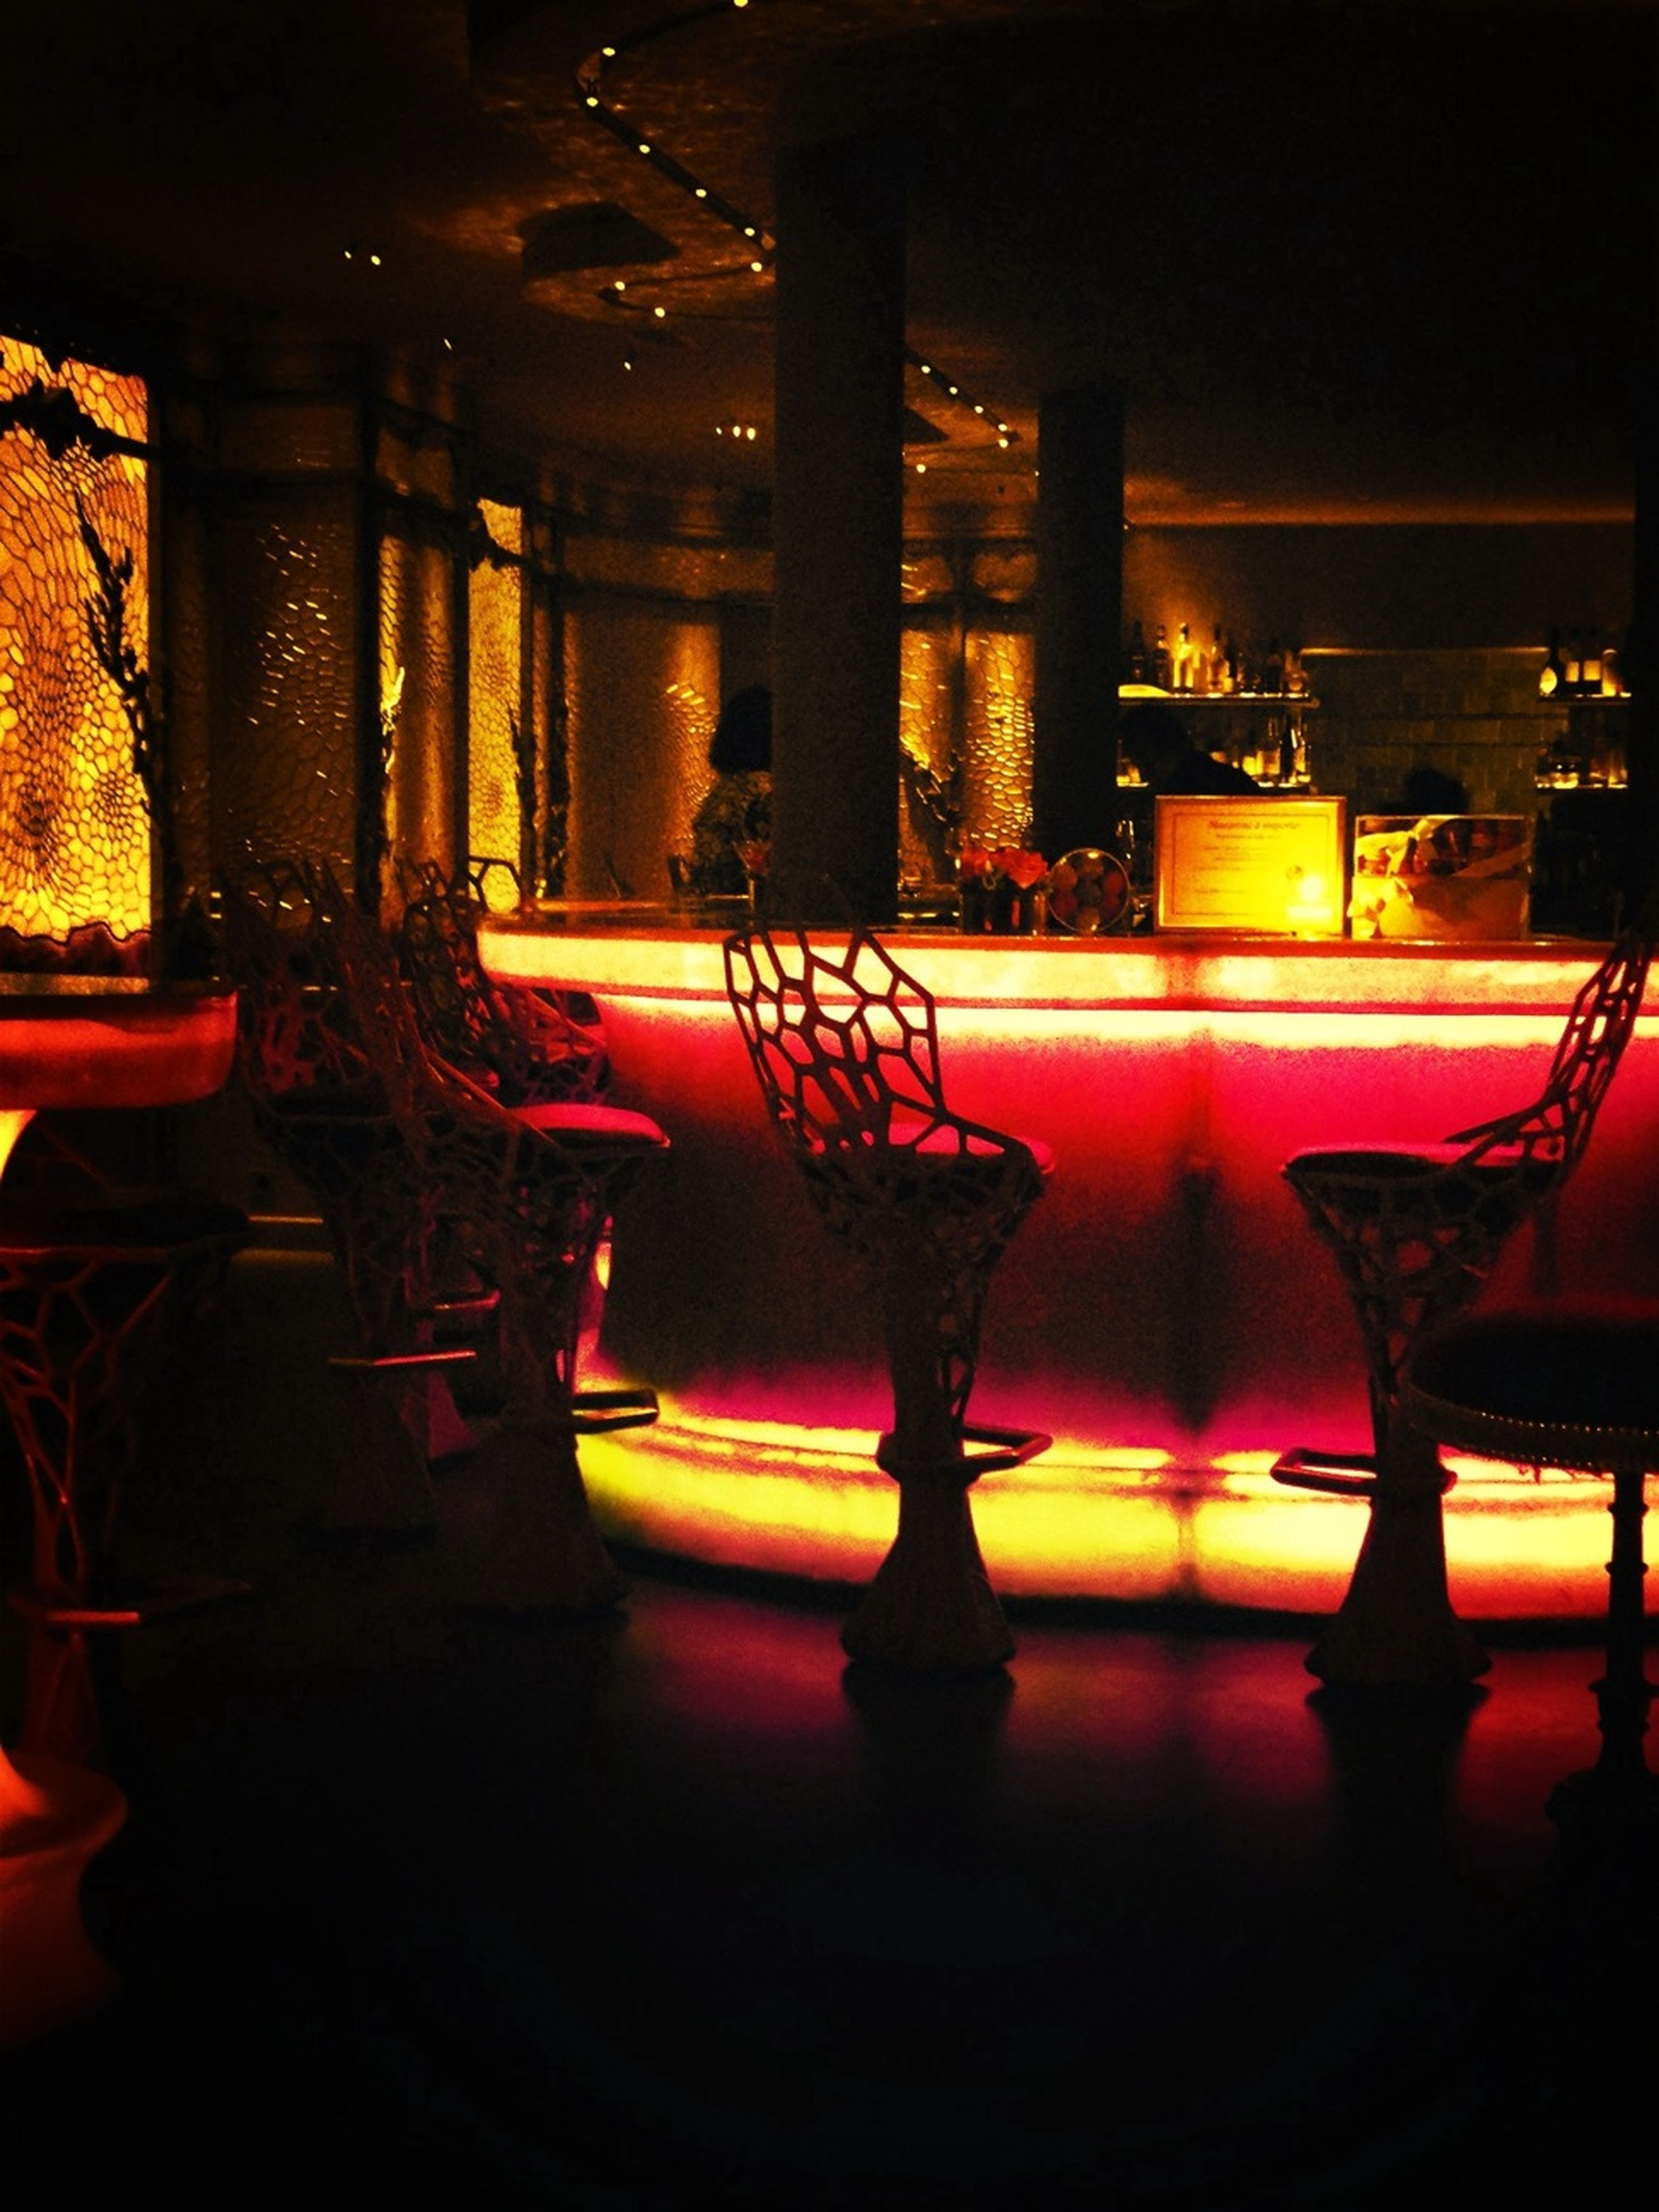 illuminated, night, chair, built structure, architecture, absence, empty, lighting equipment, indoors, table, dark, restaurant, building exterior, light - natural phenomenon, reflection, no people, seat, light, in a row, city